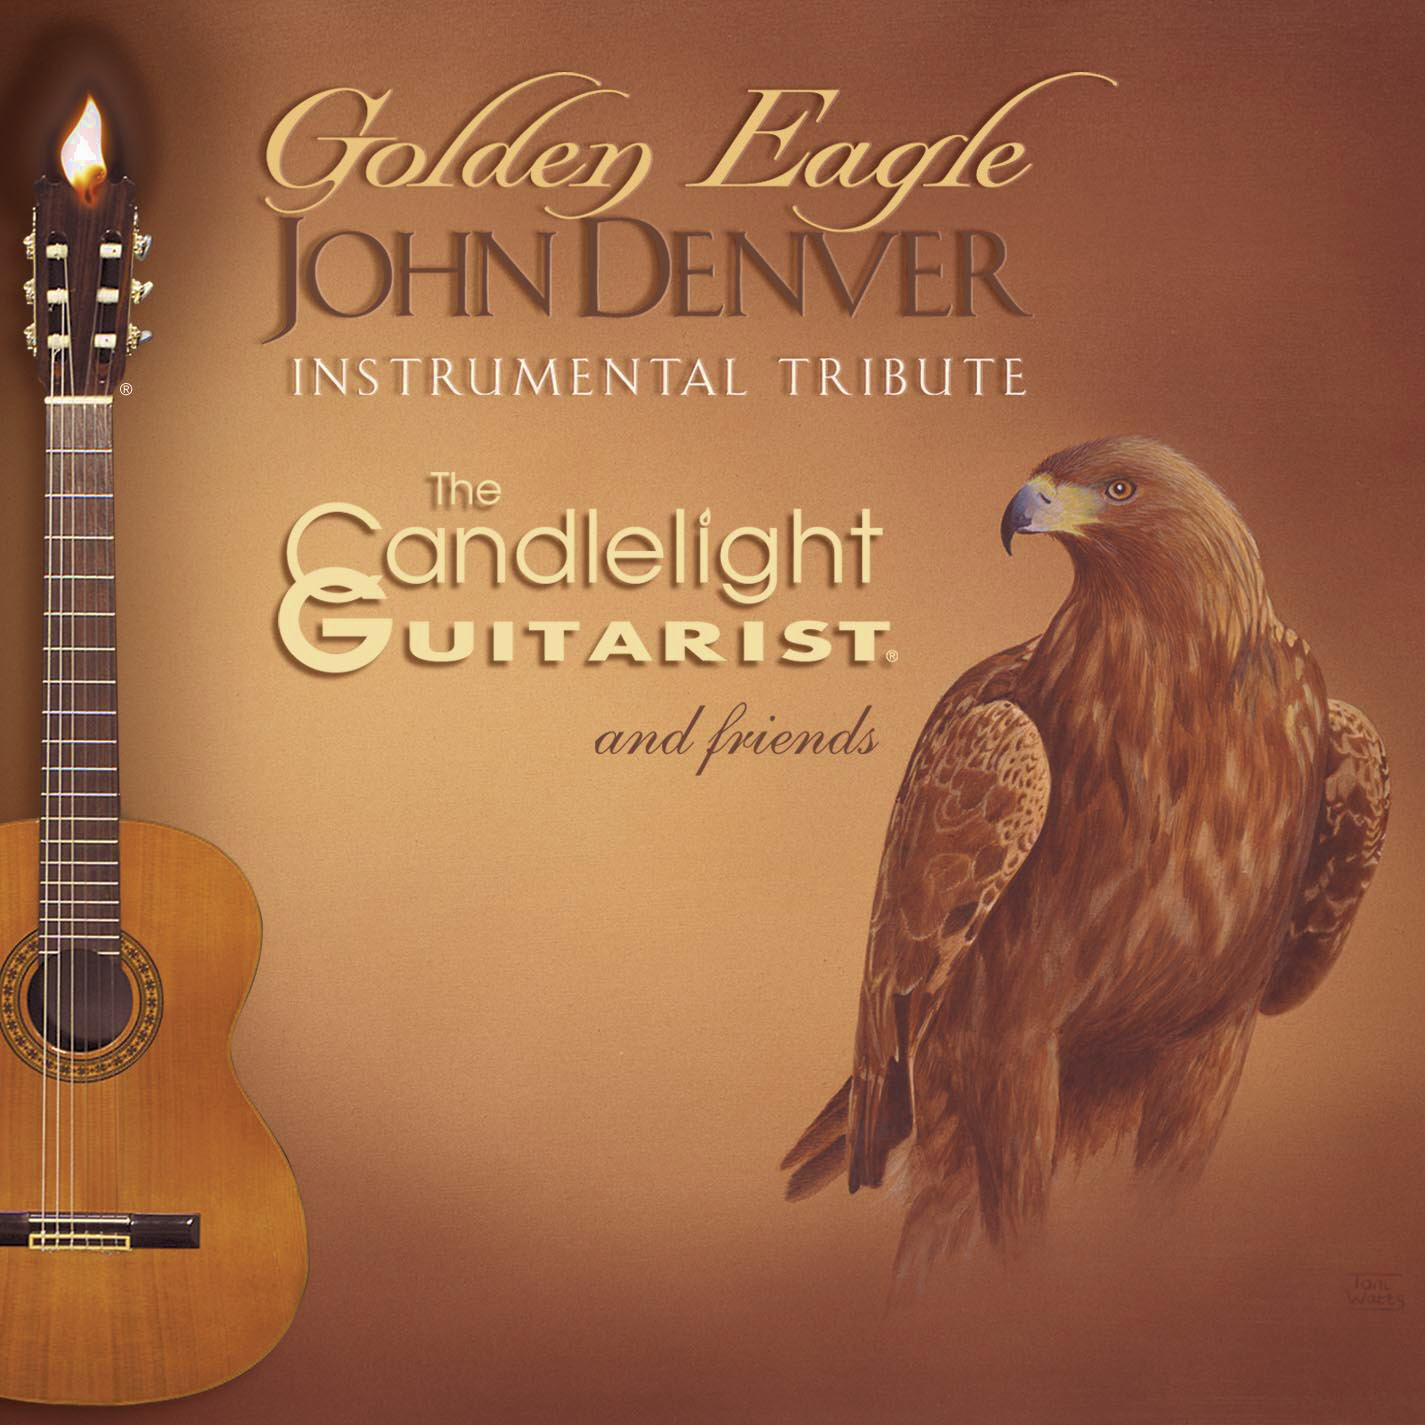 Golden Eagle: JOHN DENVER Instrumental Tribute by The Candlelight Guitarist ®